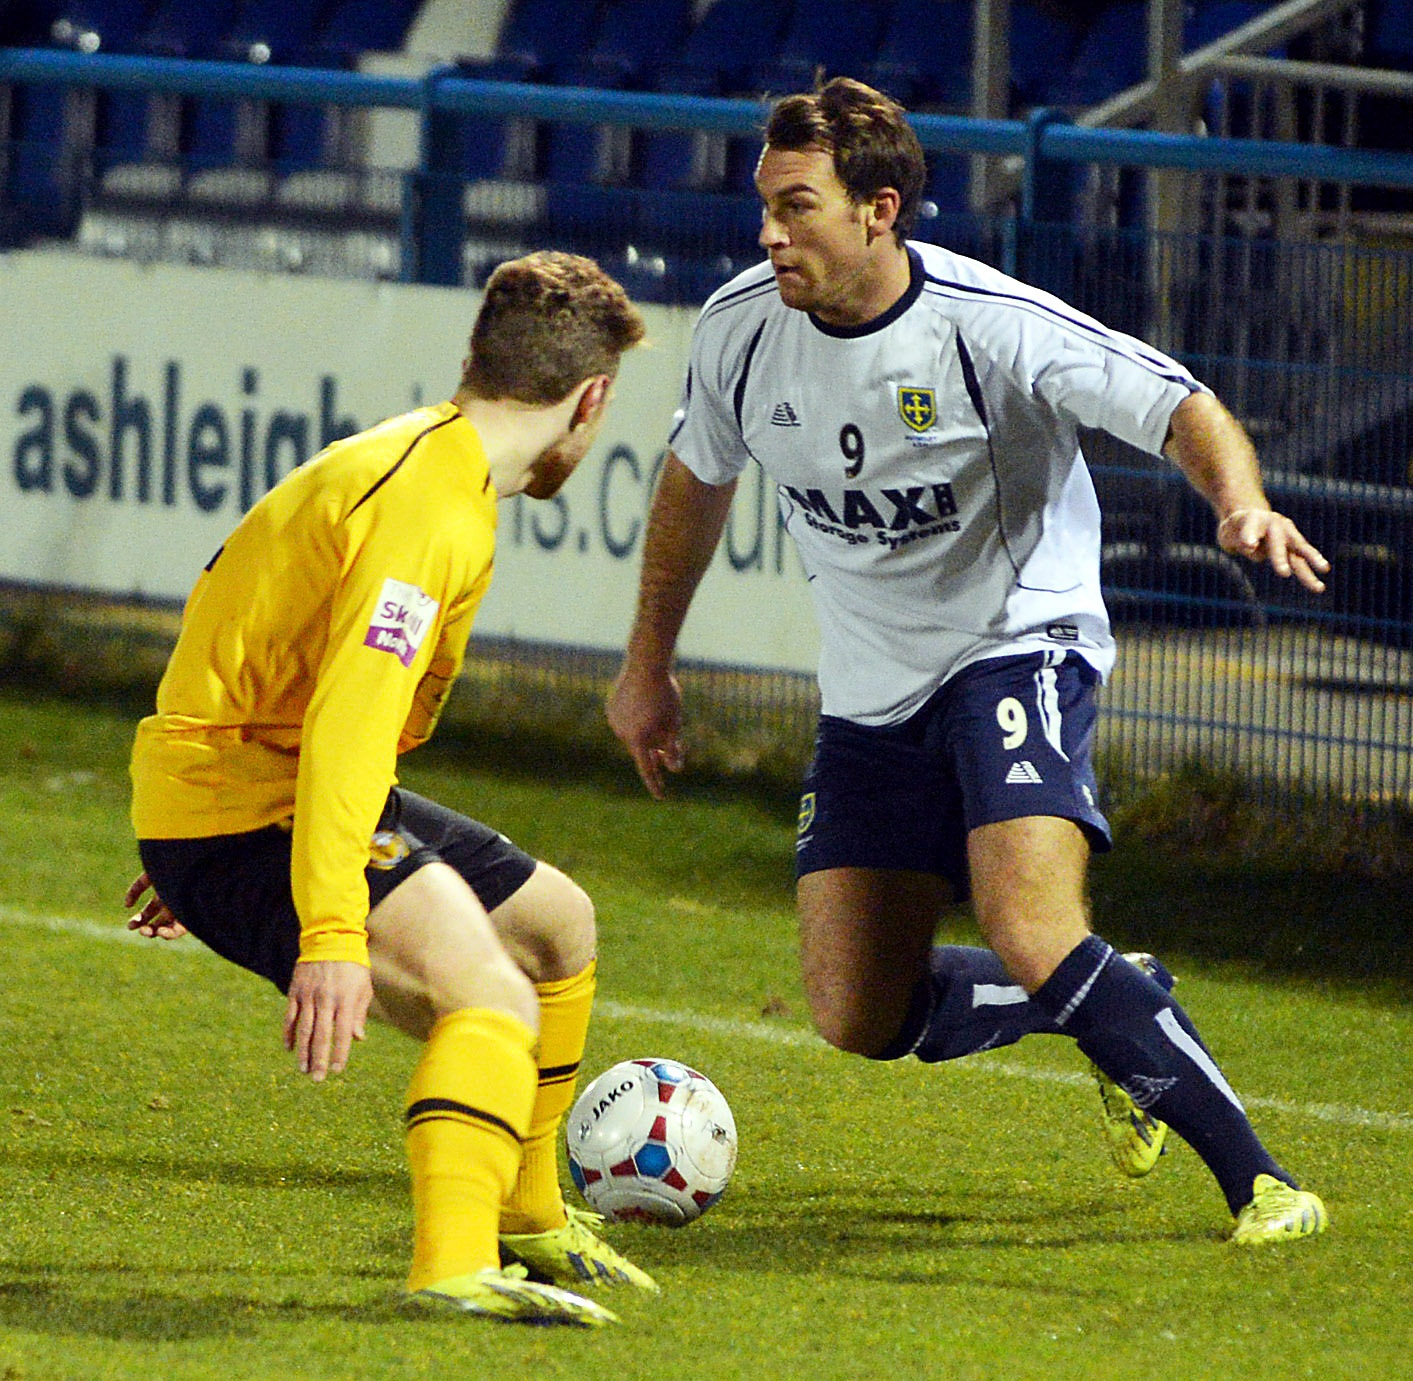 Kevin Holsgrove struck in the last minute of injury time